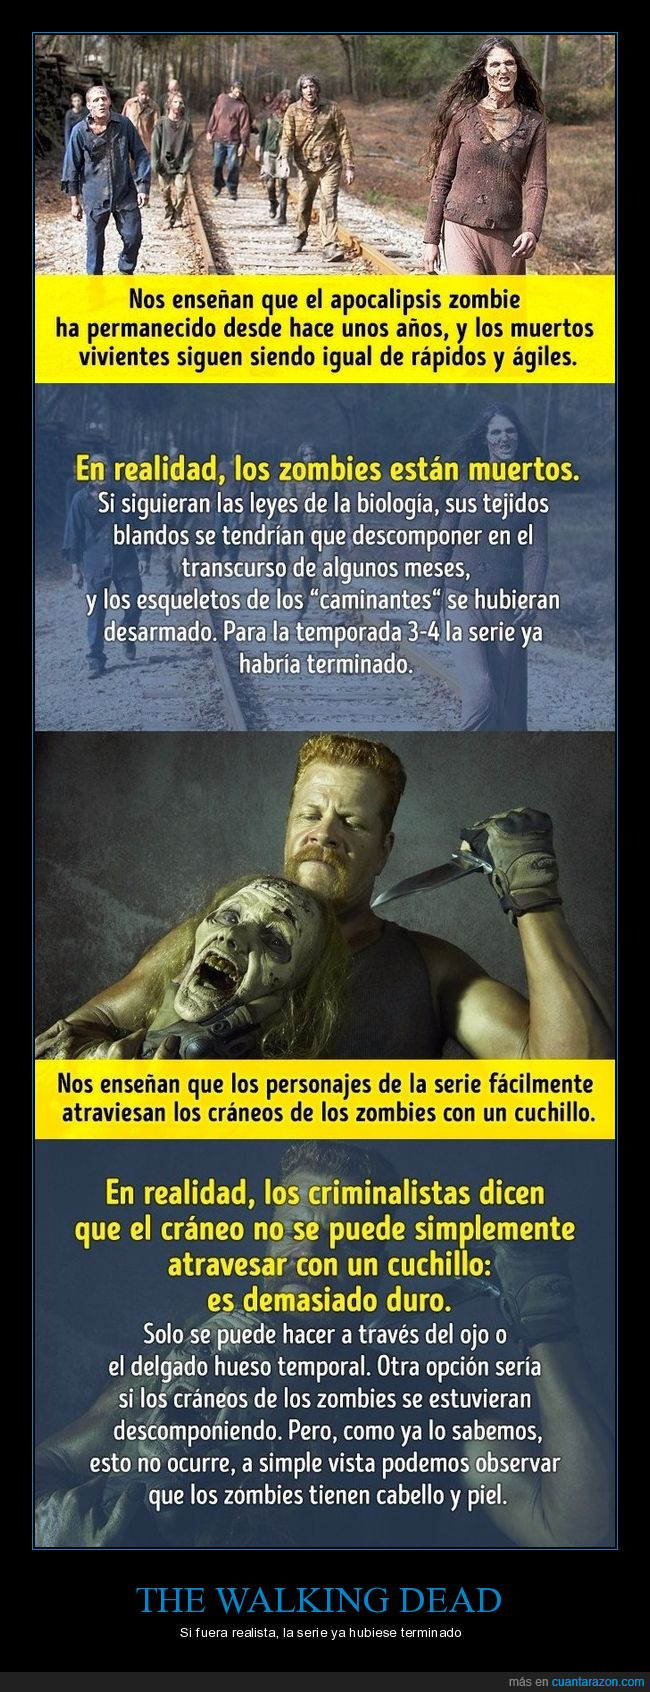 realidad,series,the walking dead,twd,zombies